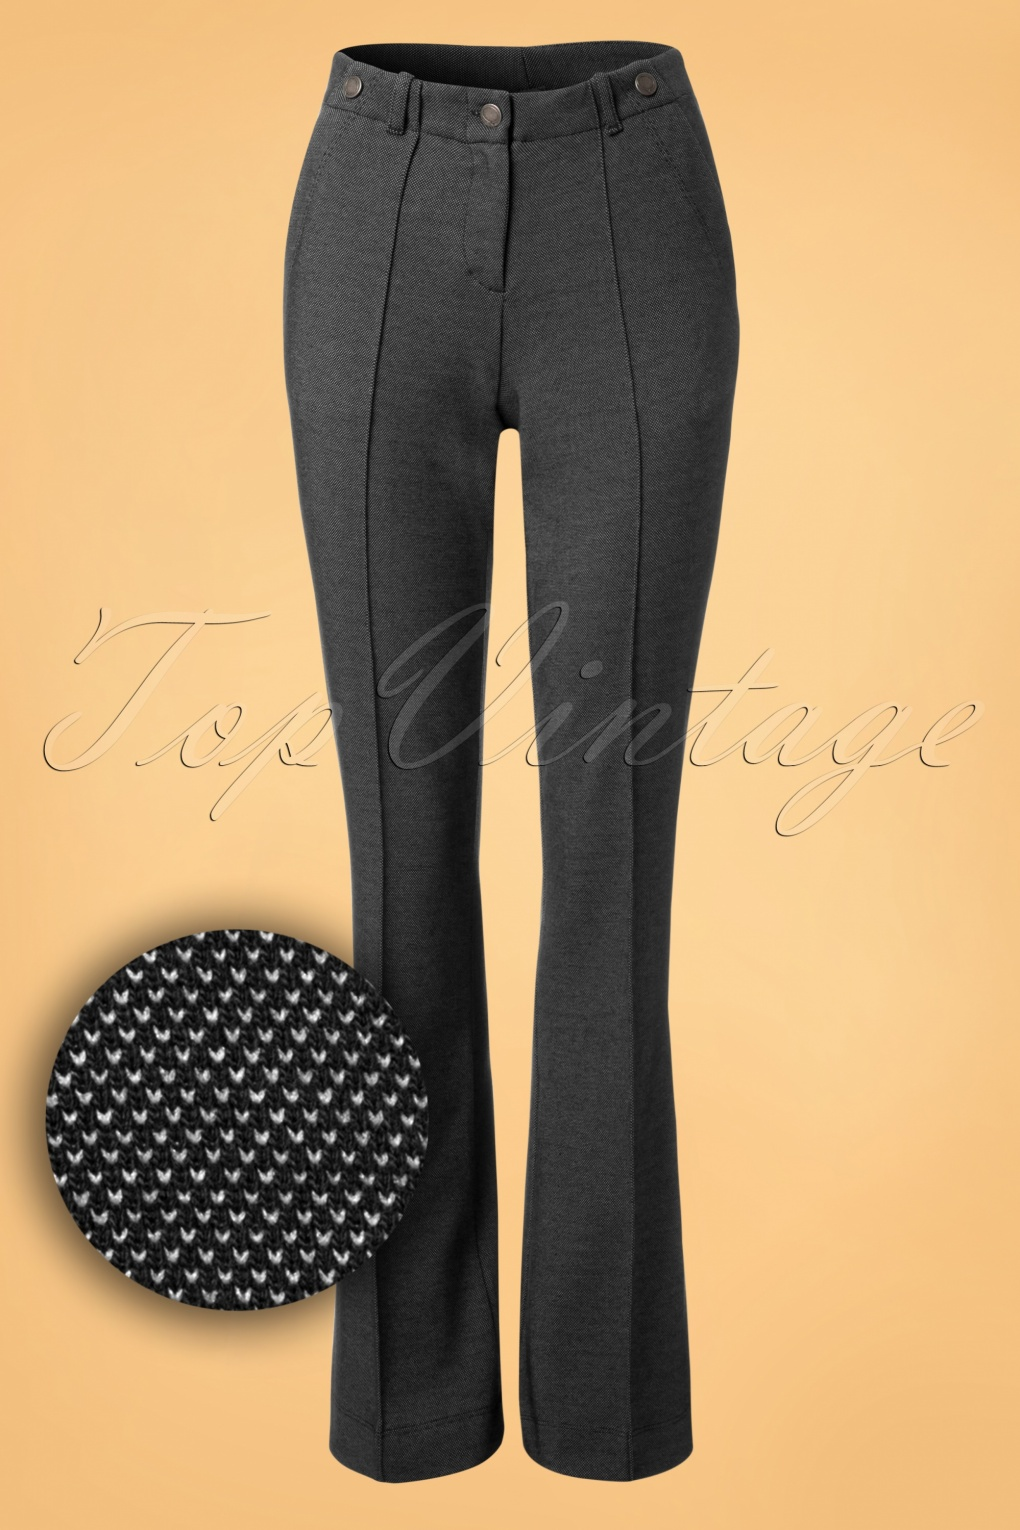 Vintage High Waisted Trousers, Sailor Pants, Jeans 60s Bongo Trousers in Black £80.87 AT vintagedancer.com